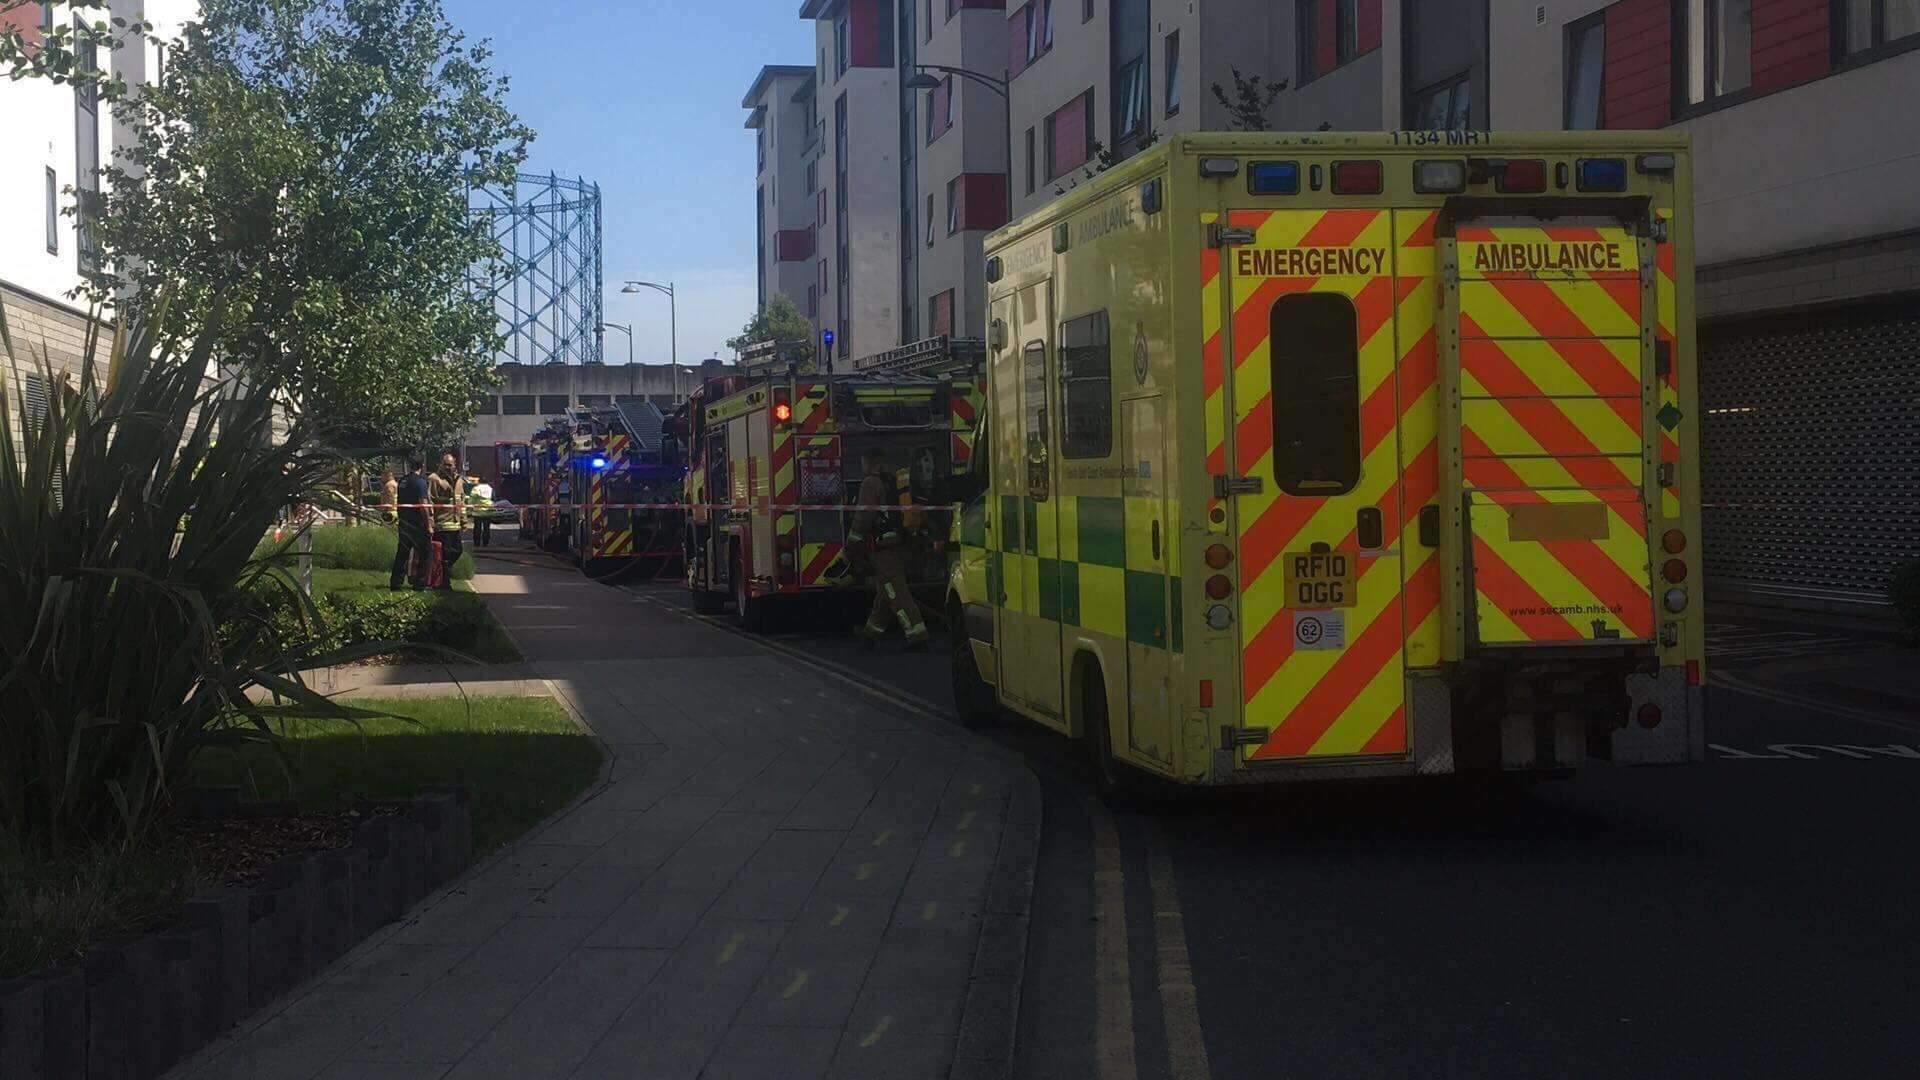 Emergency services at Liberty Quays (2057225) Credit: Shabir Noorzai